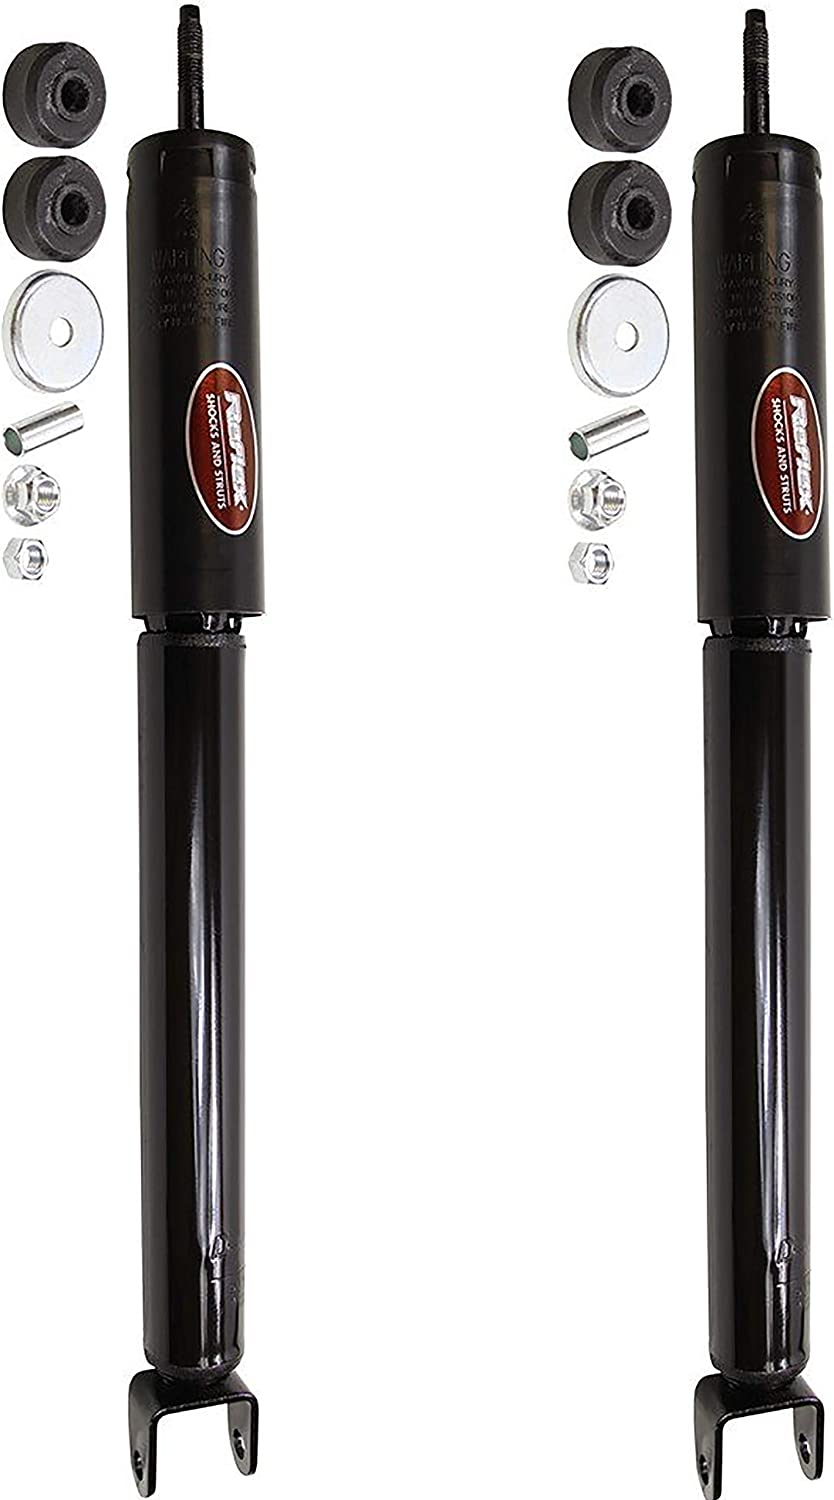 Pair Set of 2 Rear Monroe Shock Absorbers For Ford Explorer 11-17 w//o Police Pkg